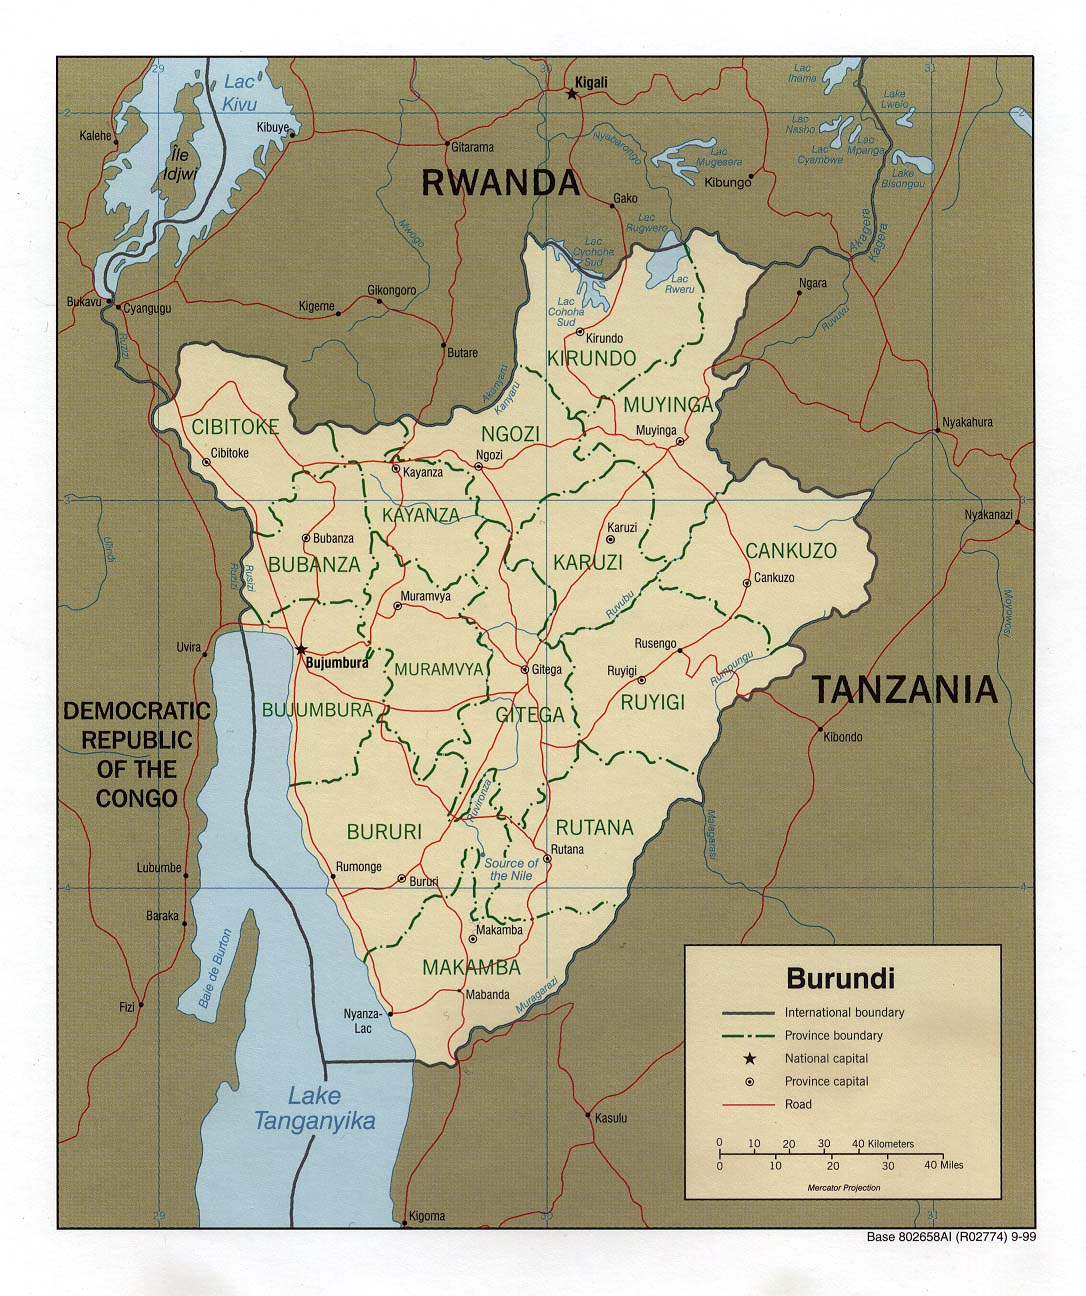 Map Of Burundi. Burundi [Political Map] 1999 (262K)